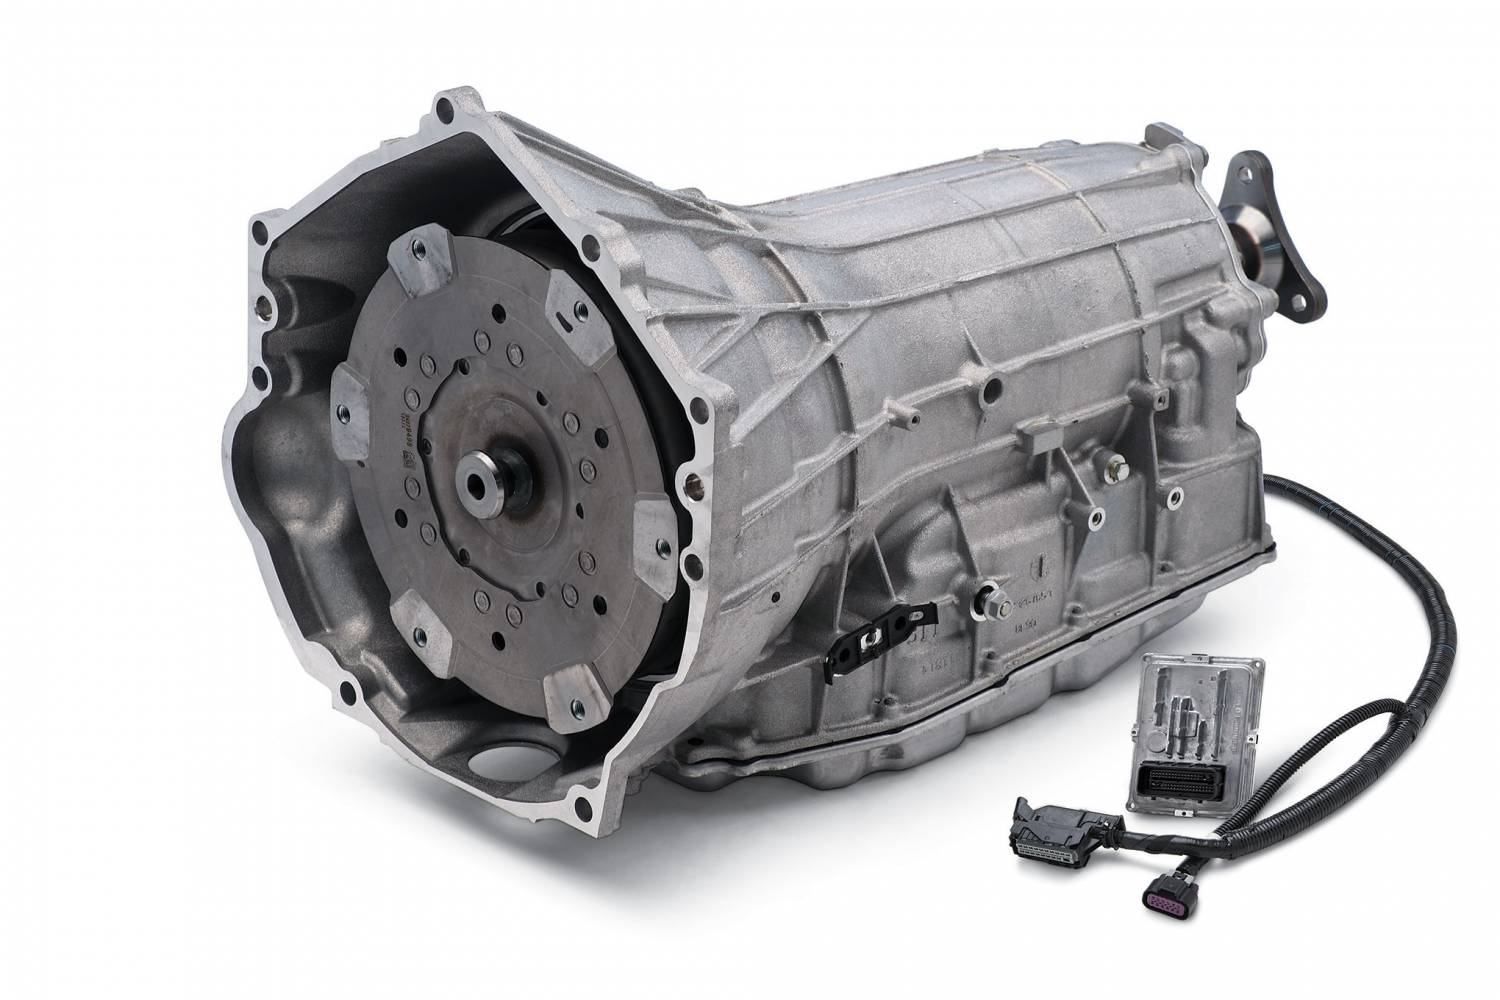 hight resolution of chevrolet performance parts 19371501 8l90e 8 speed automatic transmission package for gm lt4